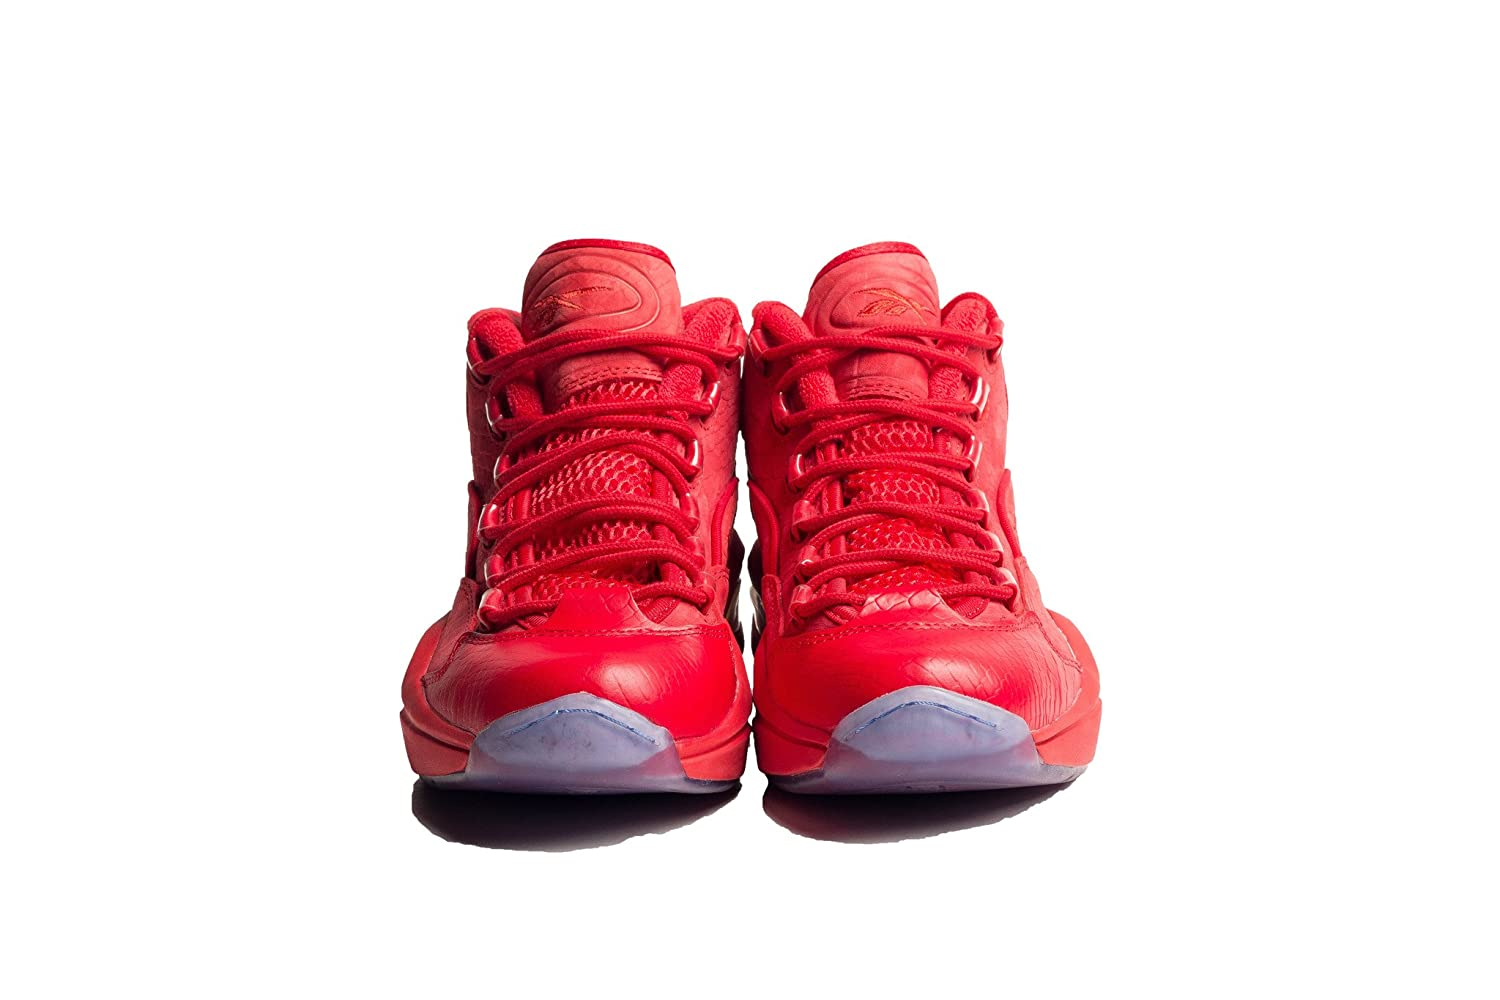 260bc87df145 Reebok Women s Question Mid Teyana Taylor Limited Fashion Sneakers Primal  Red Ice B M US Primal Red Ice 8.5 B(M) US  Buy Online at Low Prices in  India ...